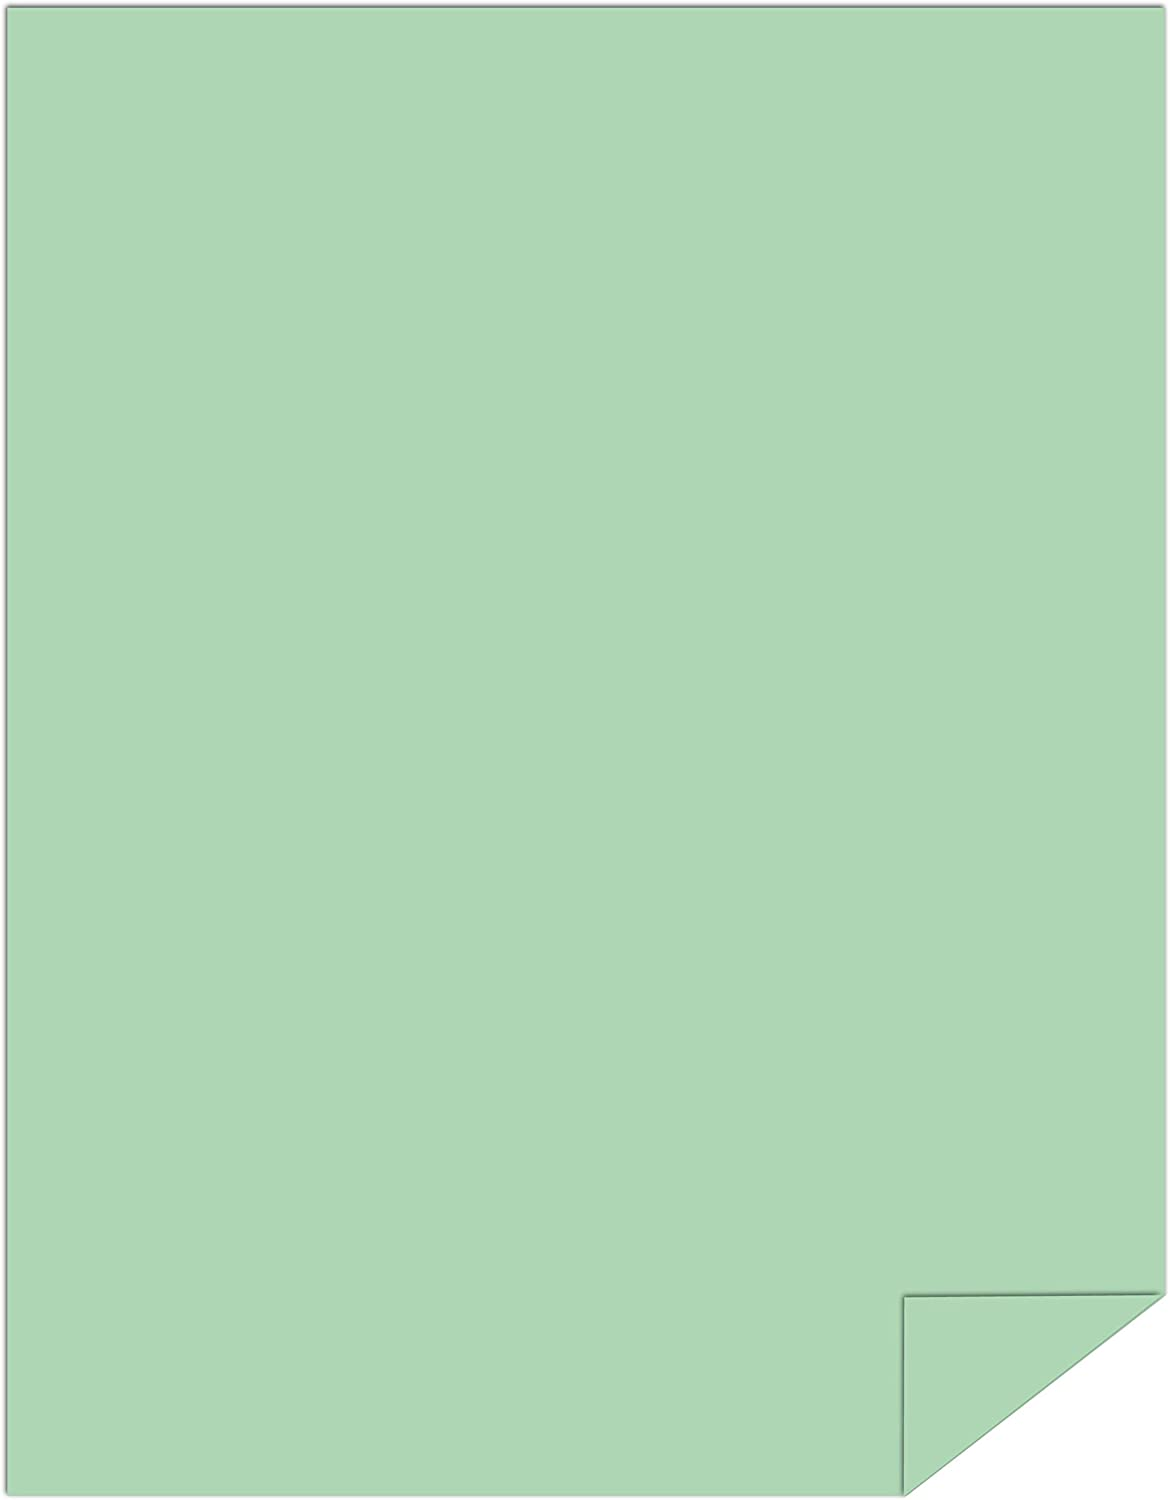 24//60lb 8.5 x 14 89gsm Heavy Paper 024225R 1 Ream // 500 Sheets Legal Springhill Colored Paper Thick Paper Opaque Green Paper